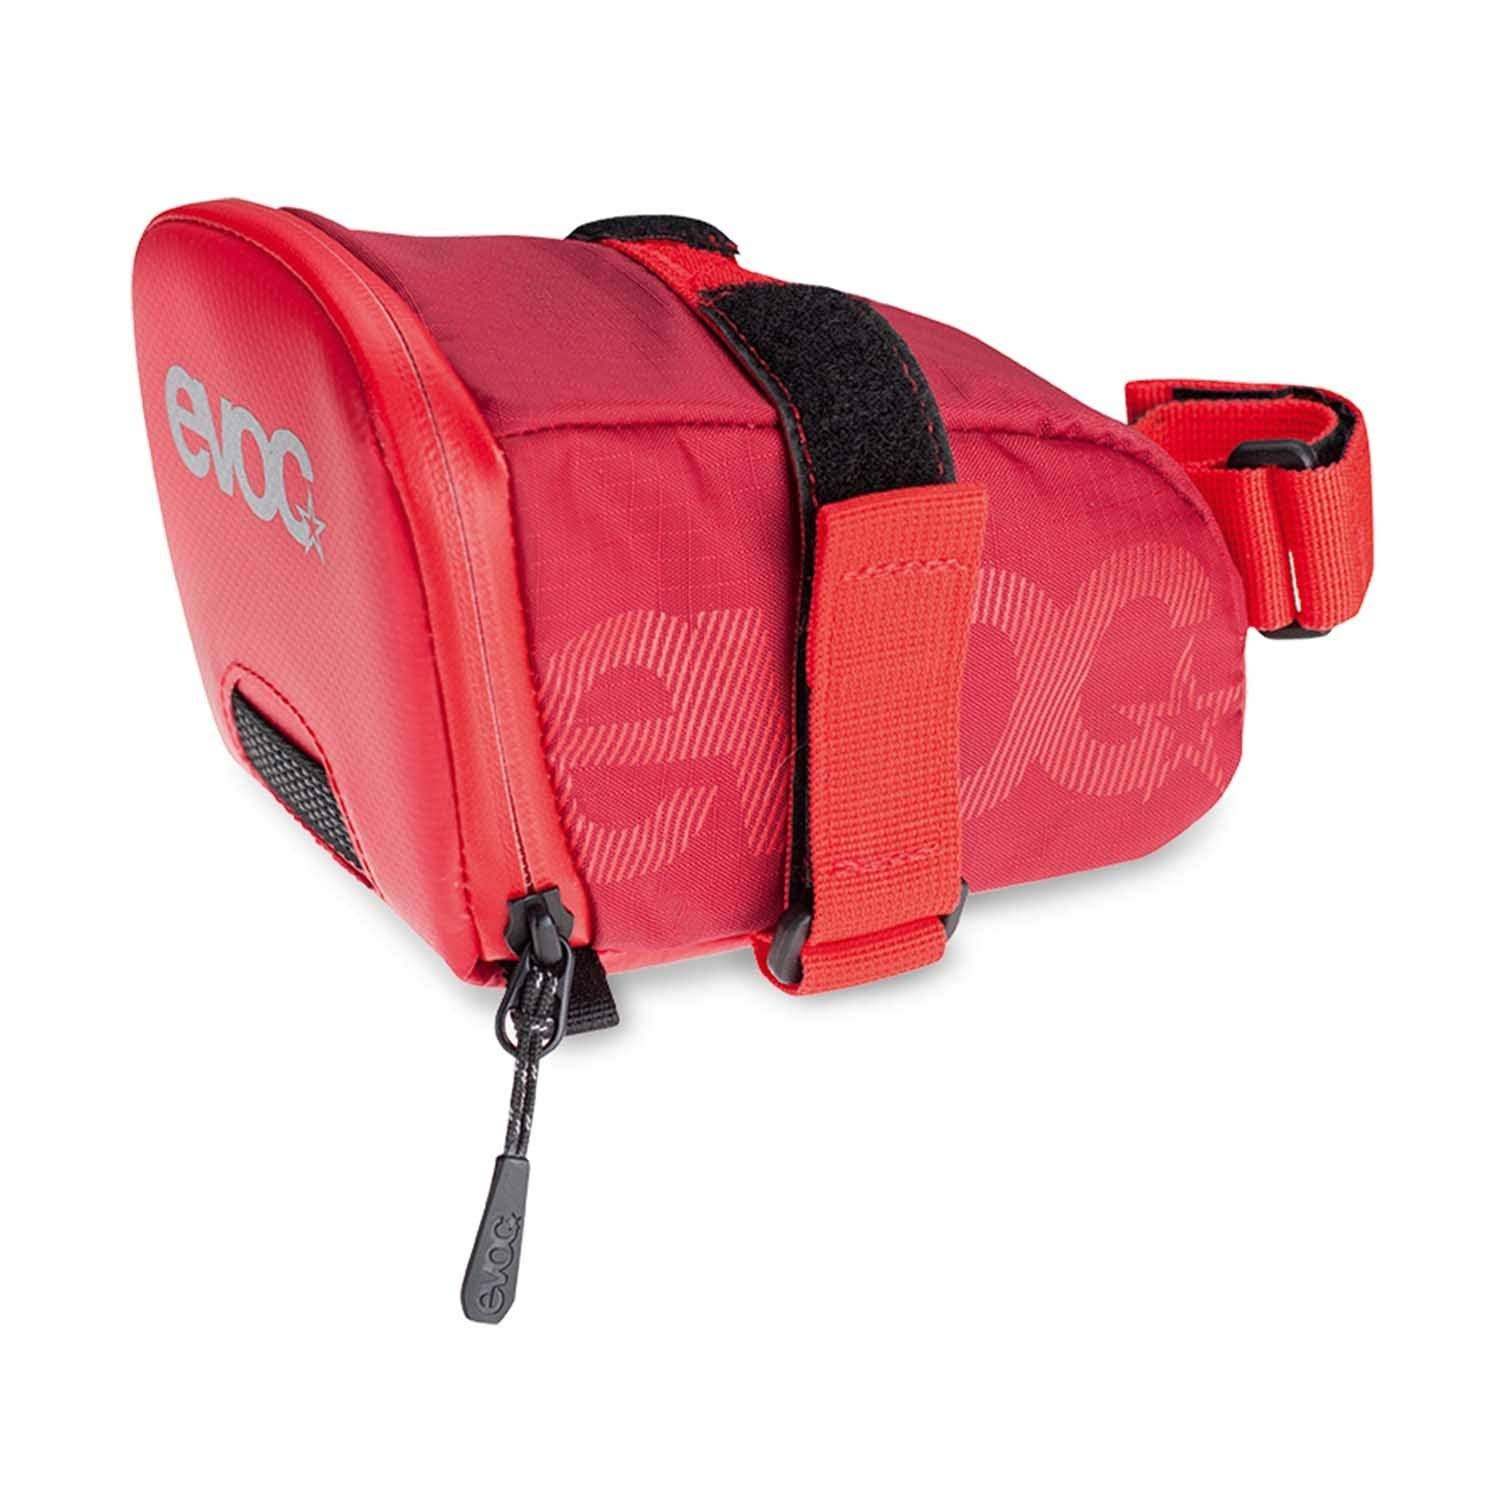 Evoc Tour Saddle Bag - Red/Ruby, 1L